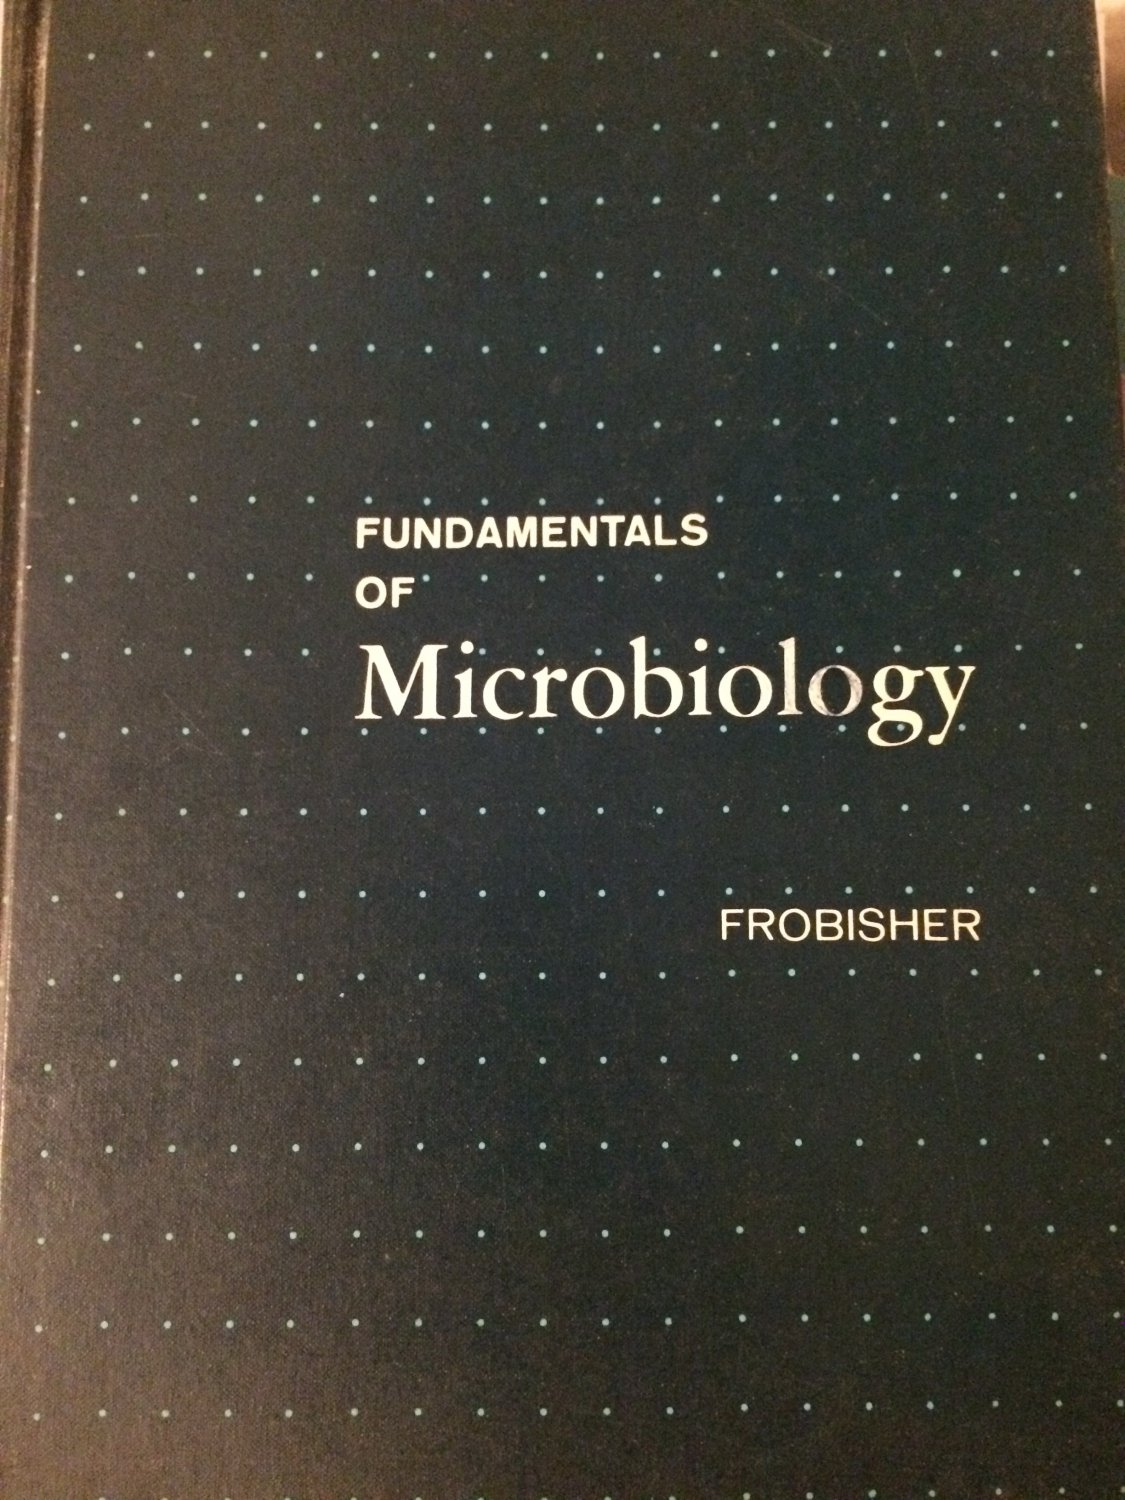 Fundamentals of Microbiology [Hardcover] [1968] Frobisher; Hinsdill: Crabtree: Goodheart